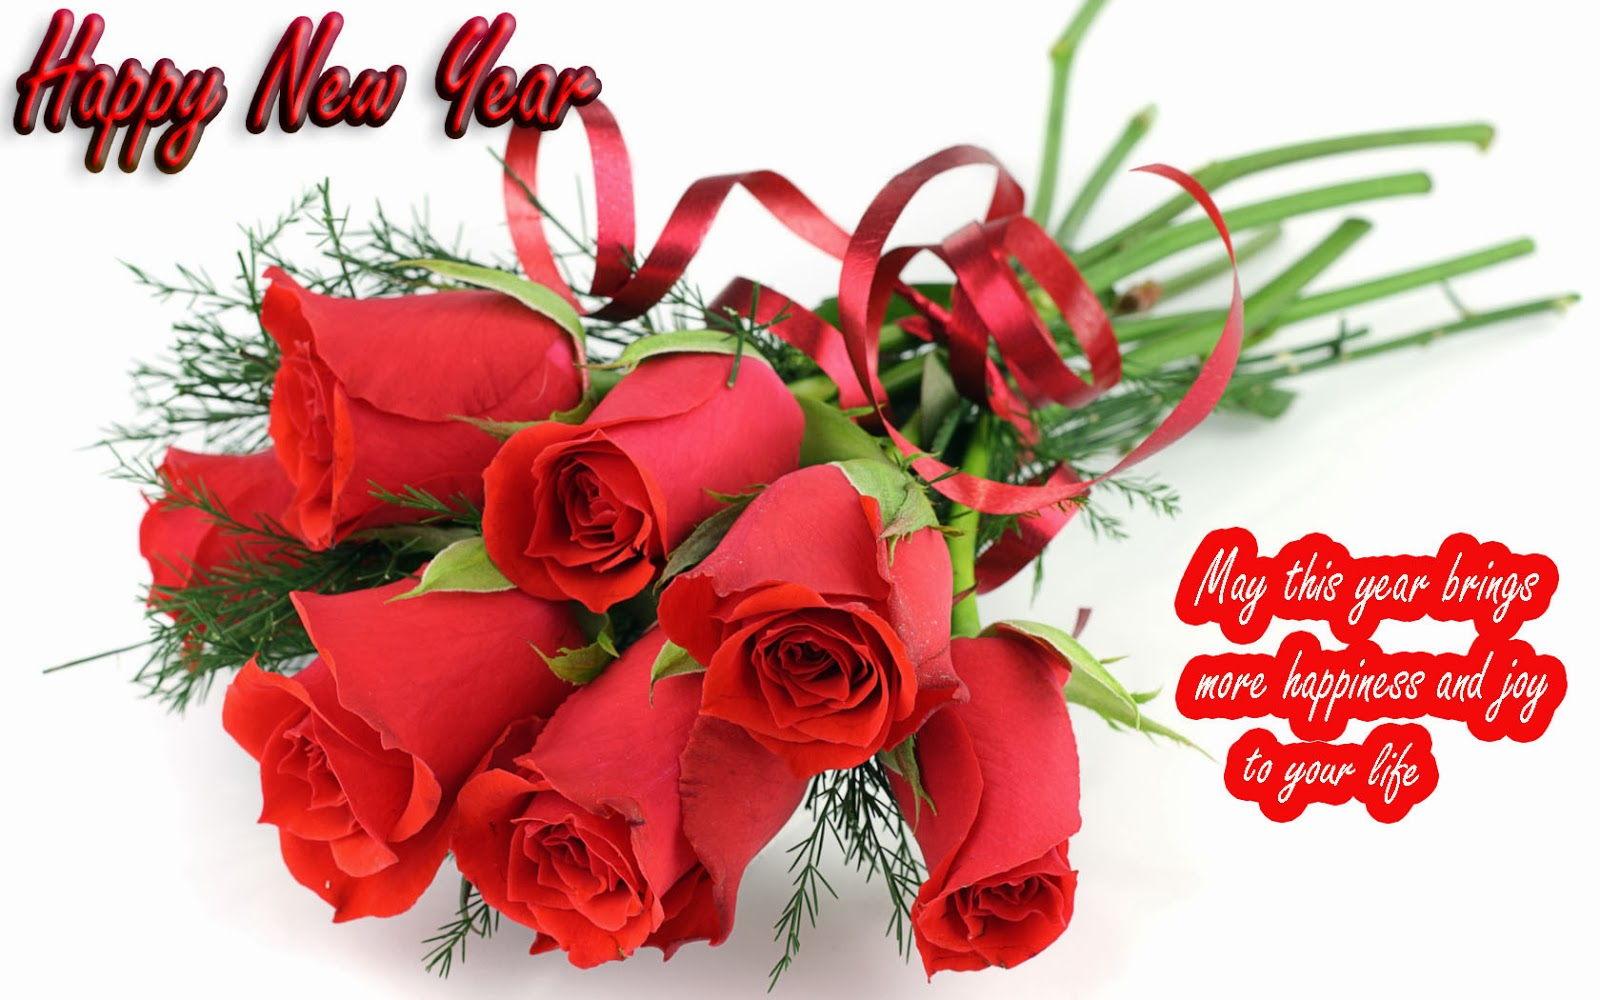 Happy New Year Beautiful Wishes Greetings Free World Festivals